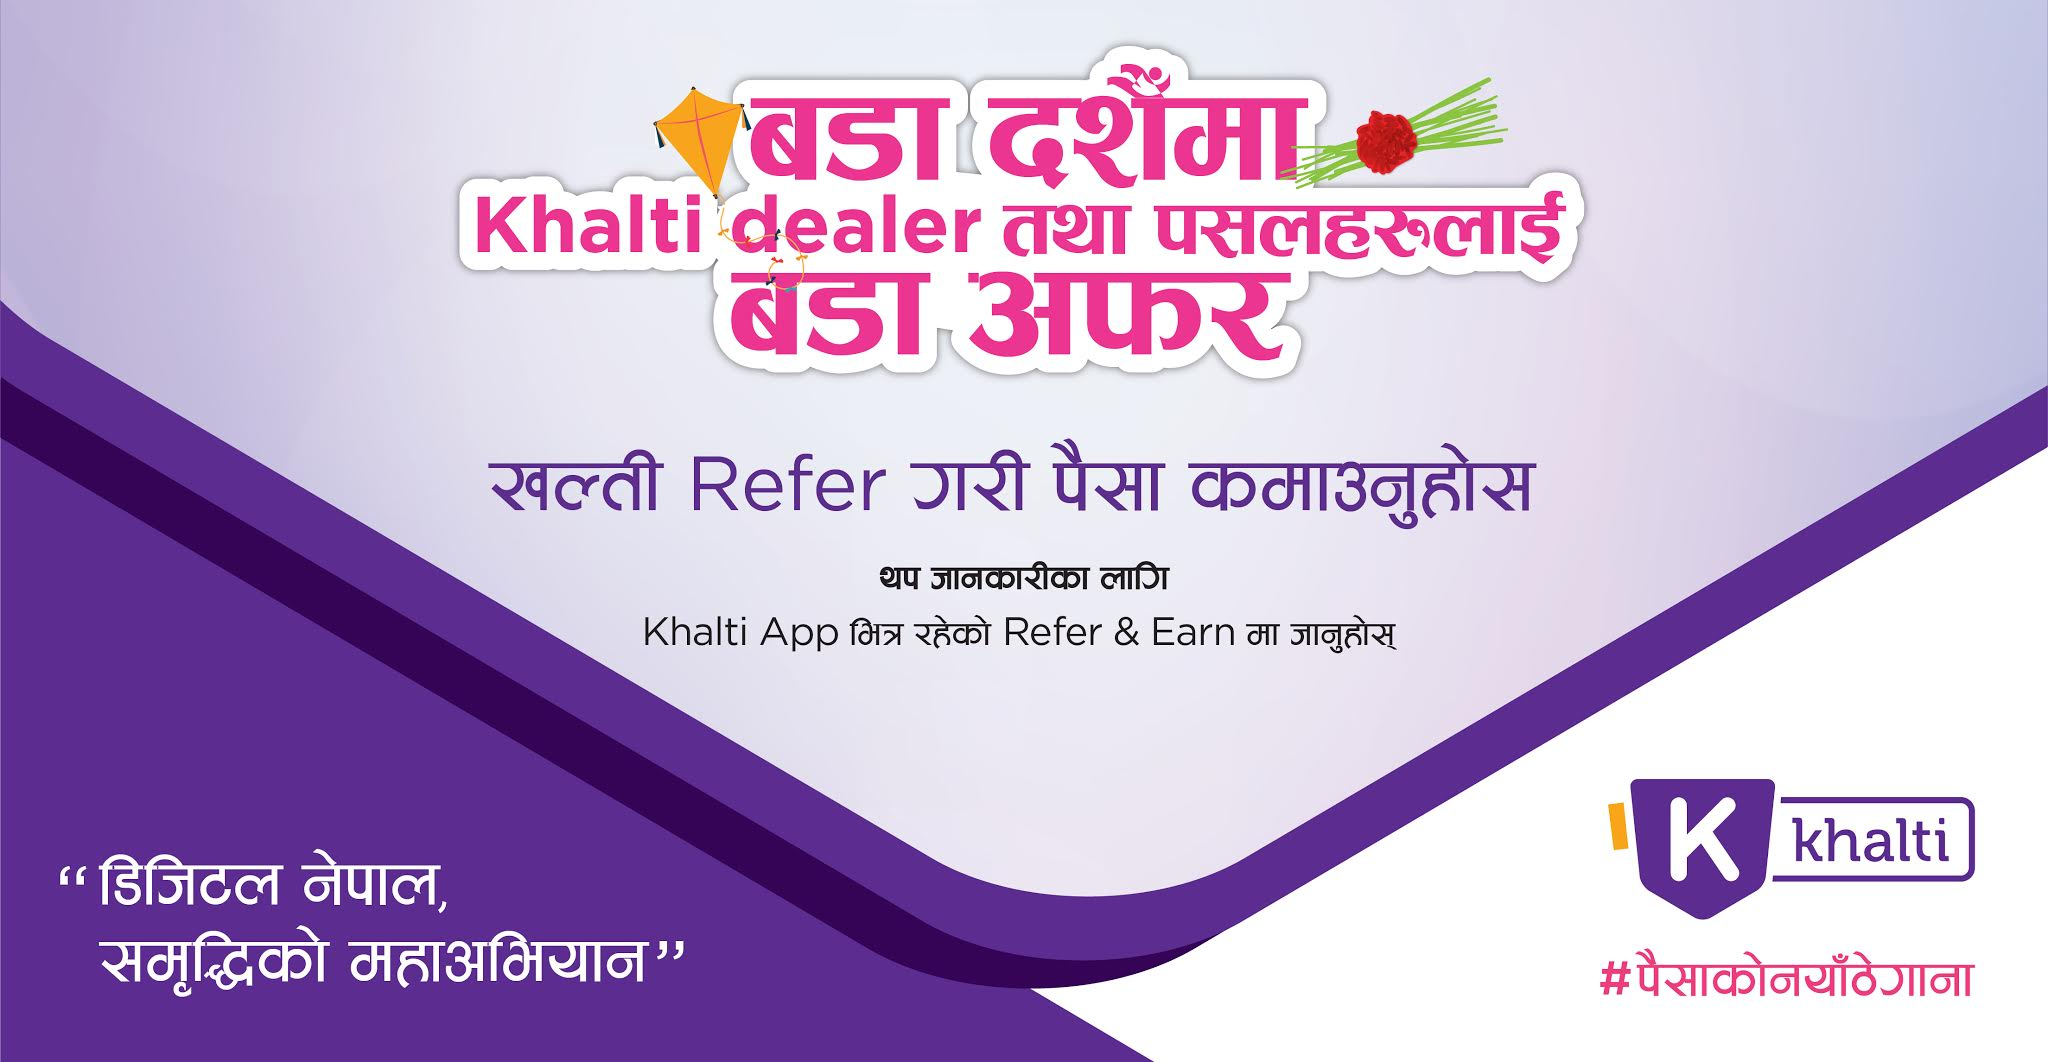 Khalti brings refer and earn offer for Khalti Pasal and Dealers this festive season! Time to make your city digital through online payments